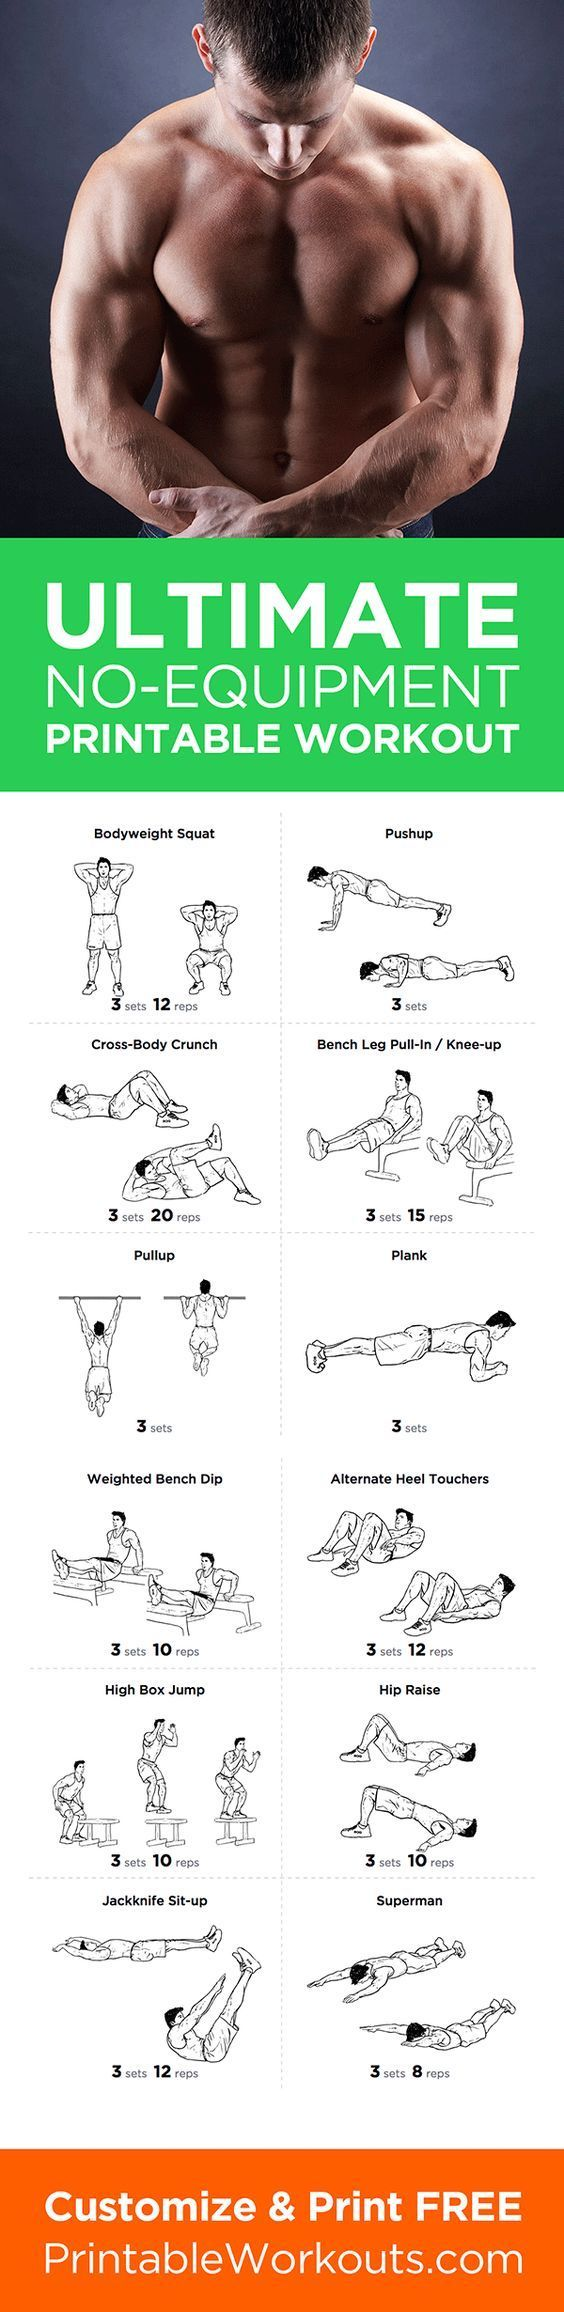 Customize Print It At Ultimate Home Full Body No Equipment Printable Workout Routine